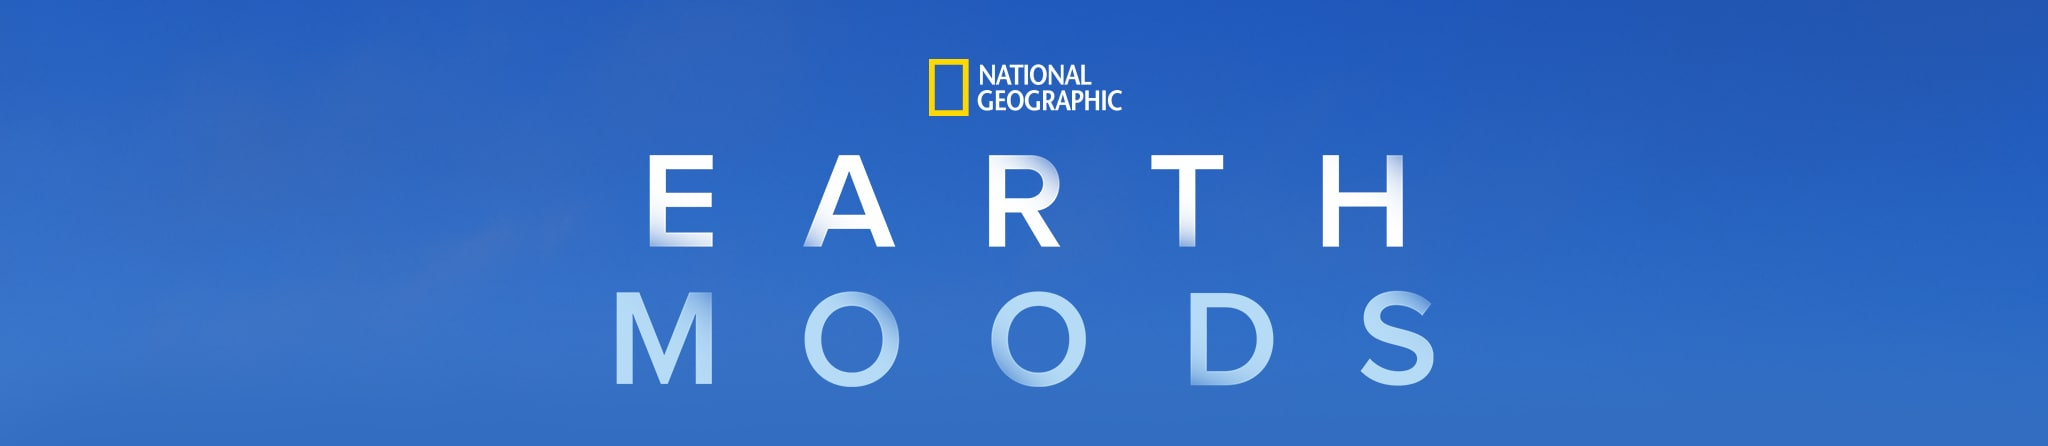 National Geographic | Earth Moods